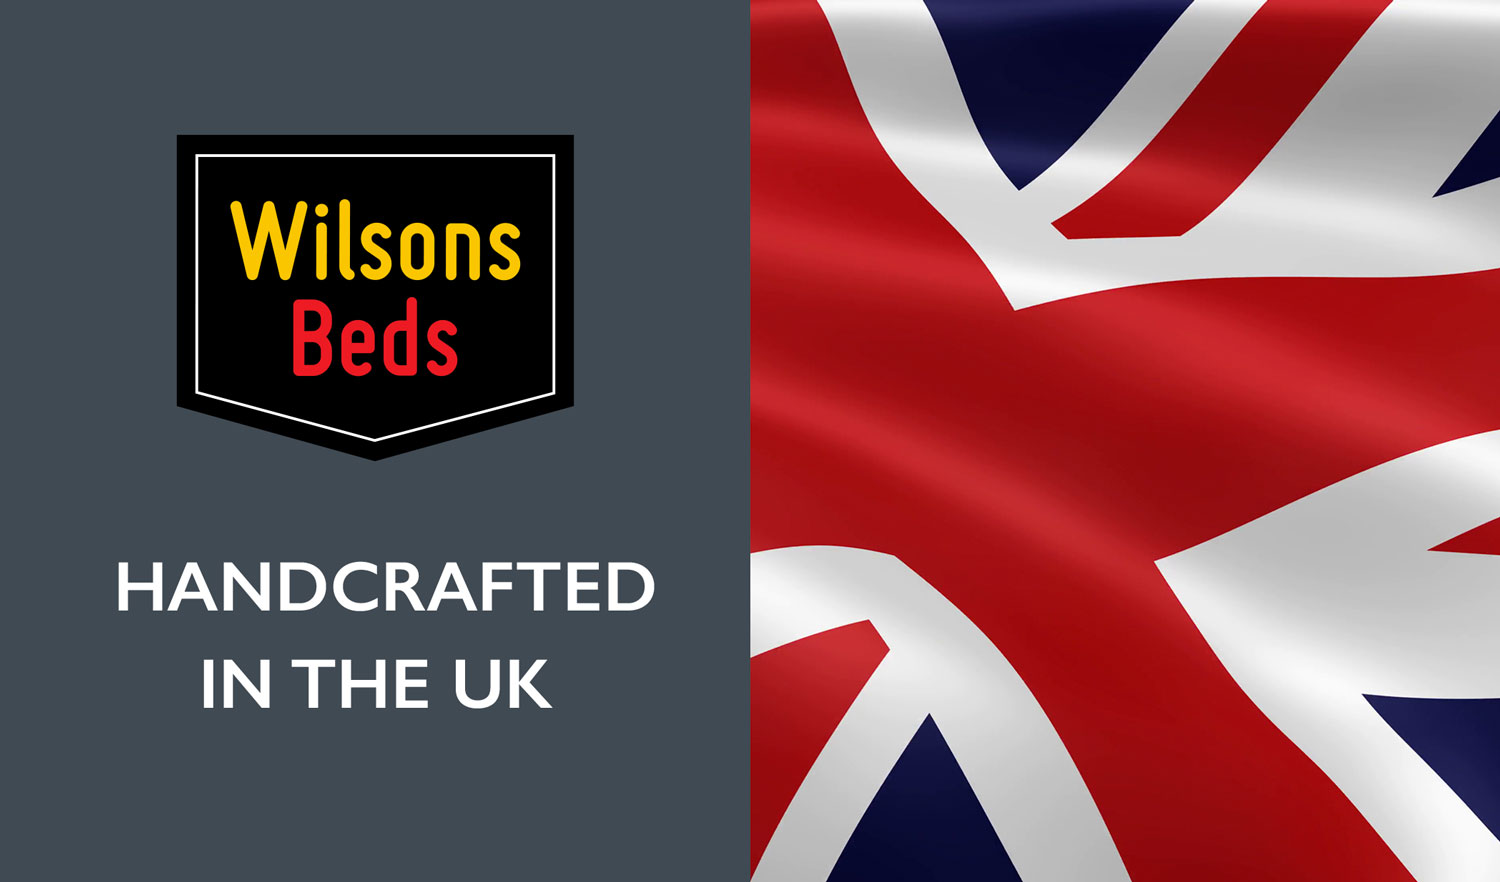 Wilsons Beds Handcrafted In The UK